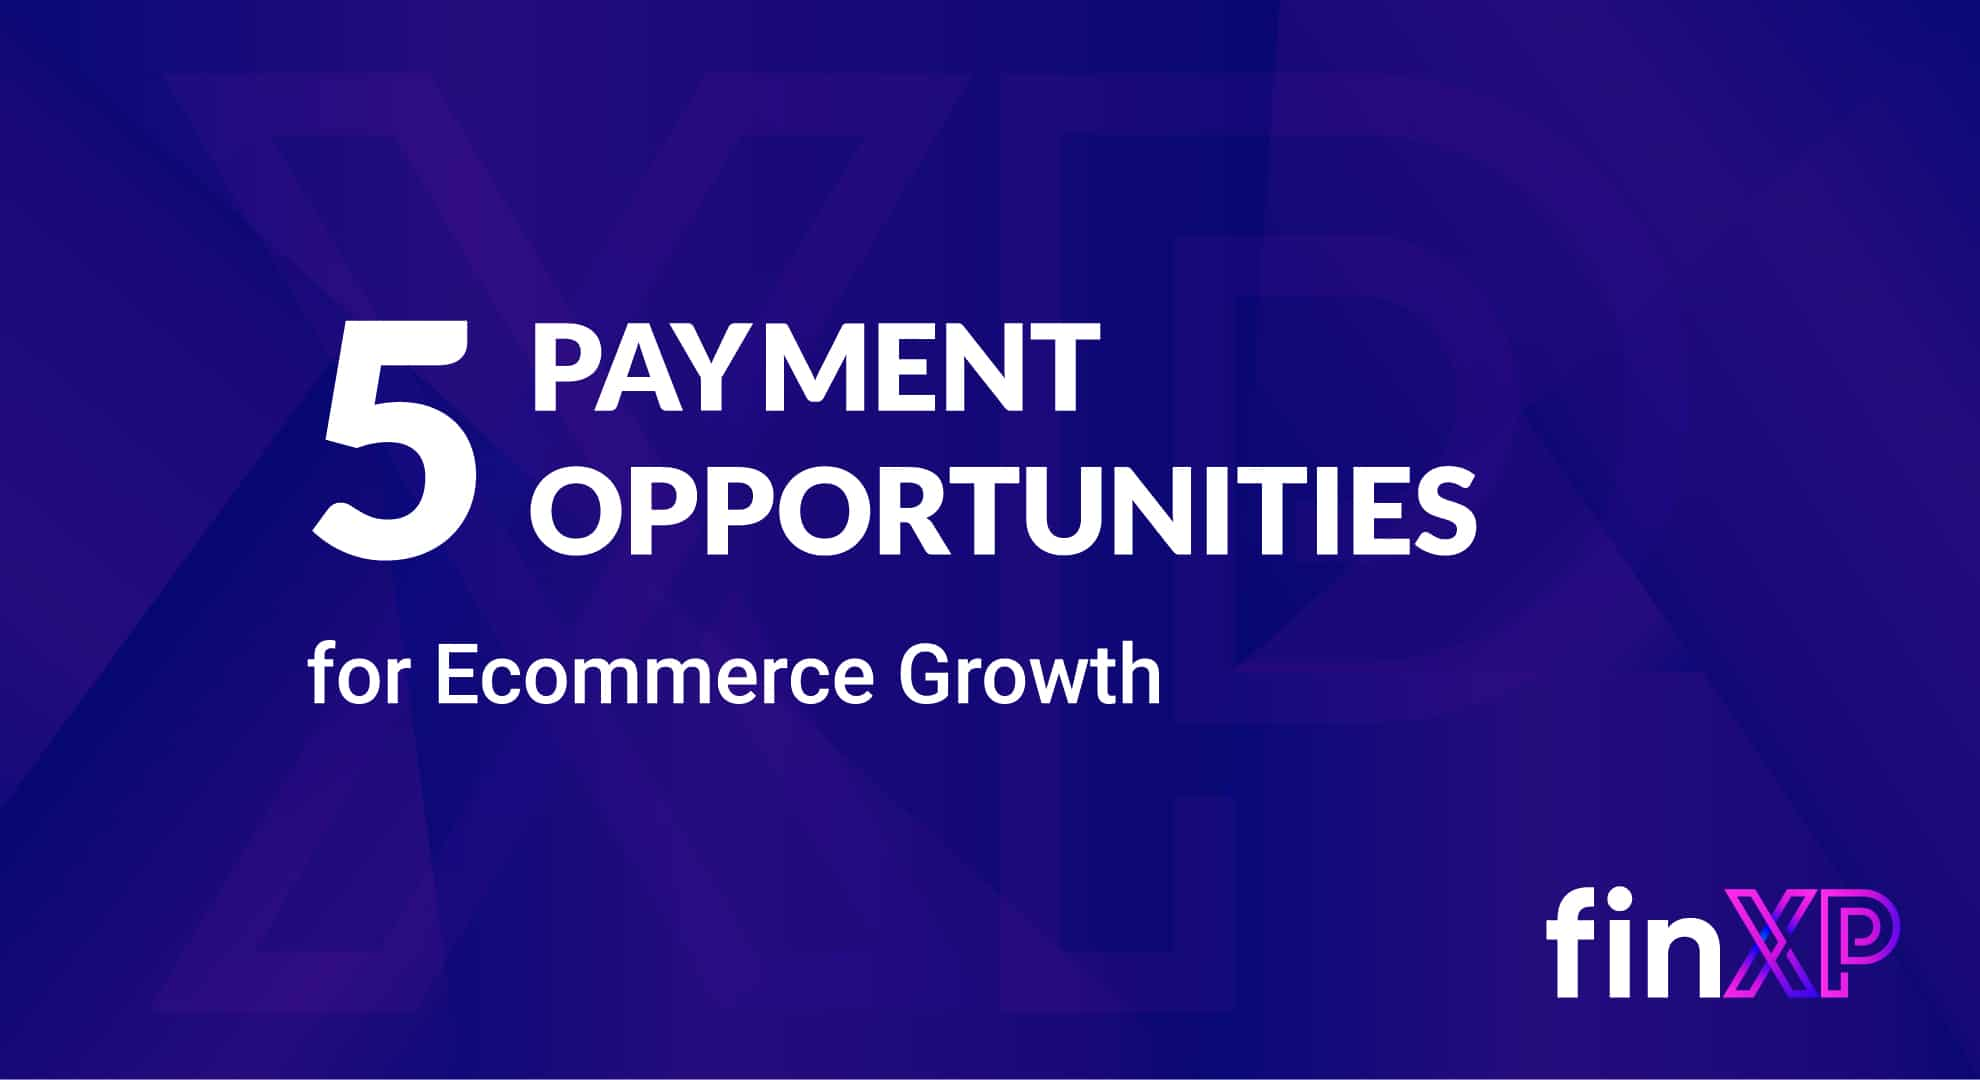 Payment Opportunities to Boost Ecommerce Growth Image